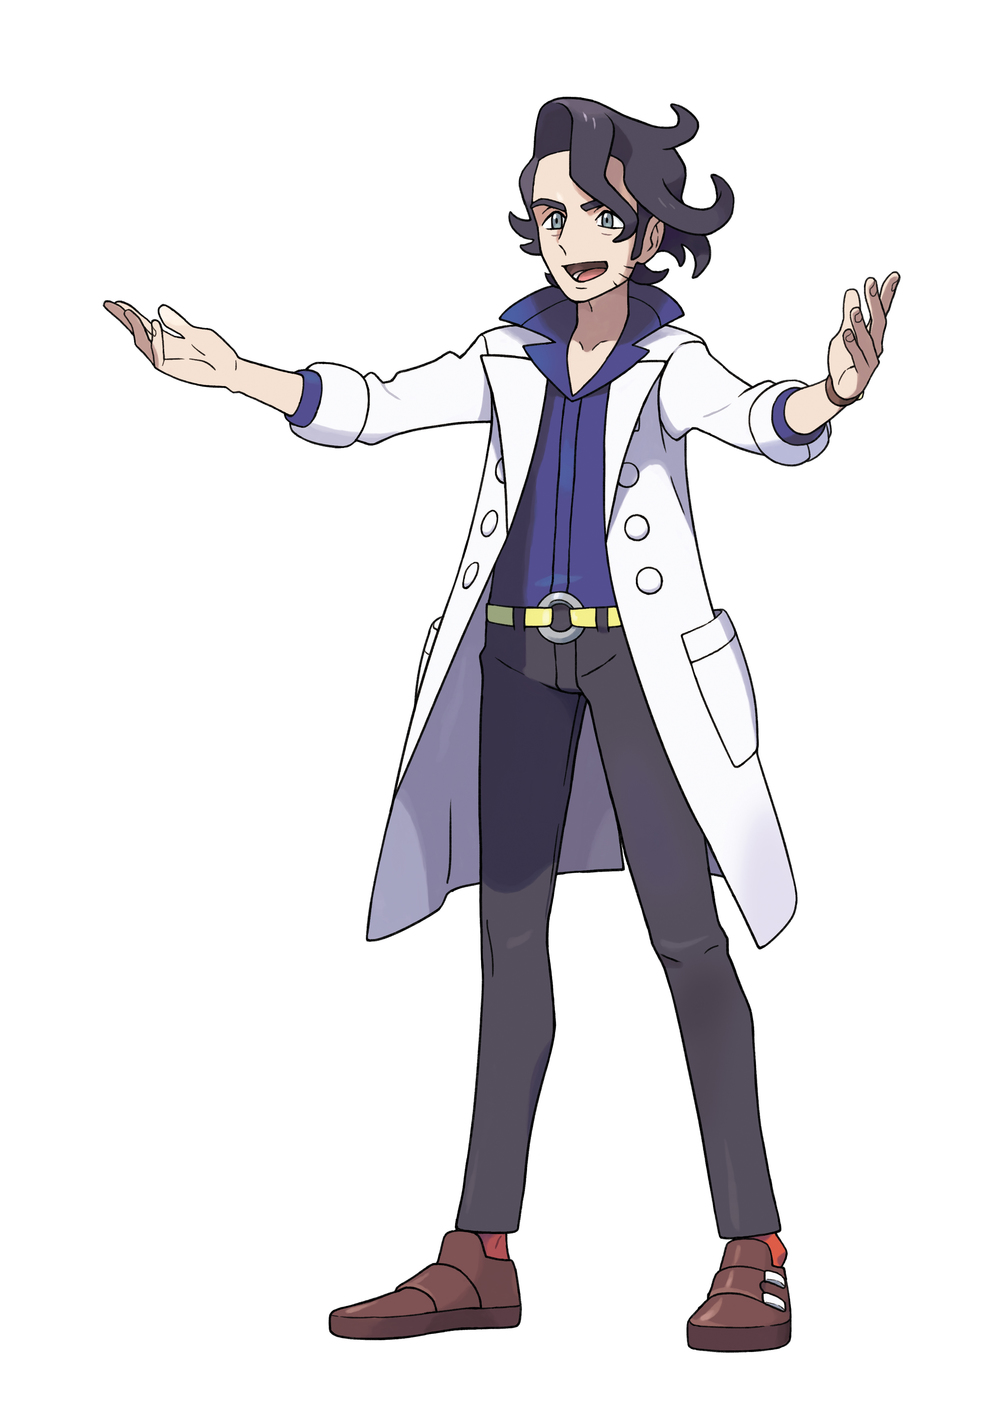 Professor Sycamore_official art_300dpi.jpg